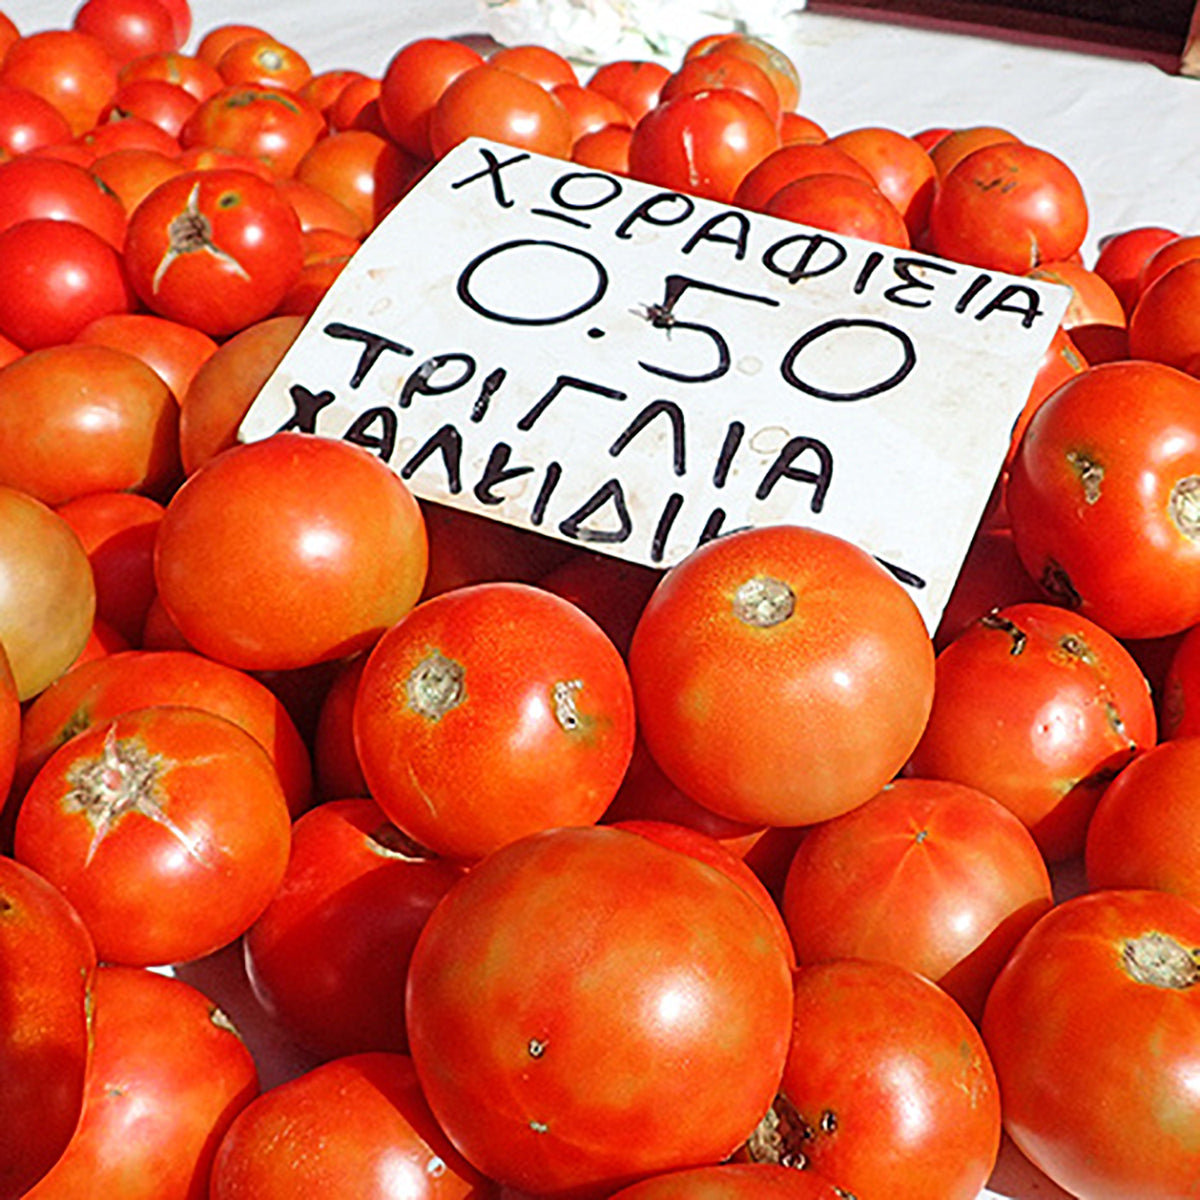 Greek tomatoes